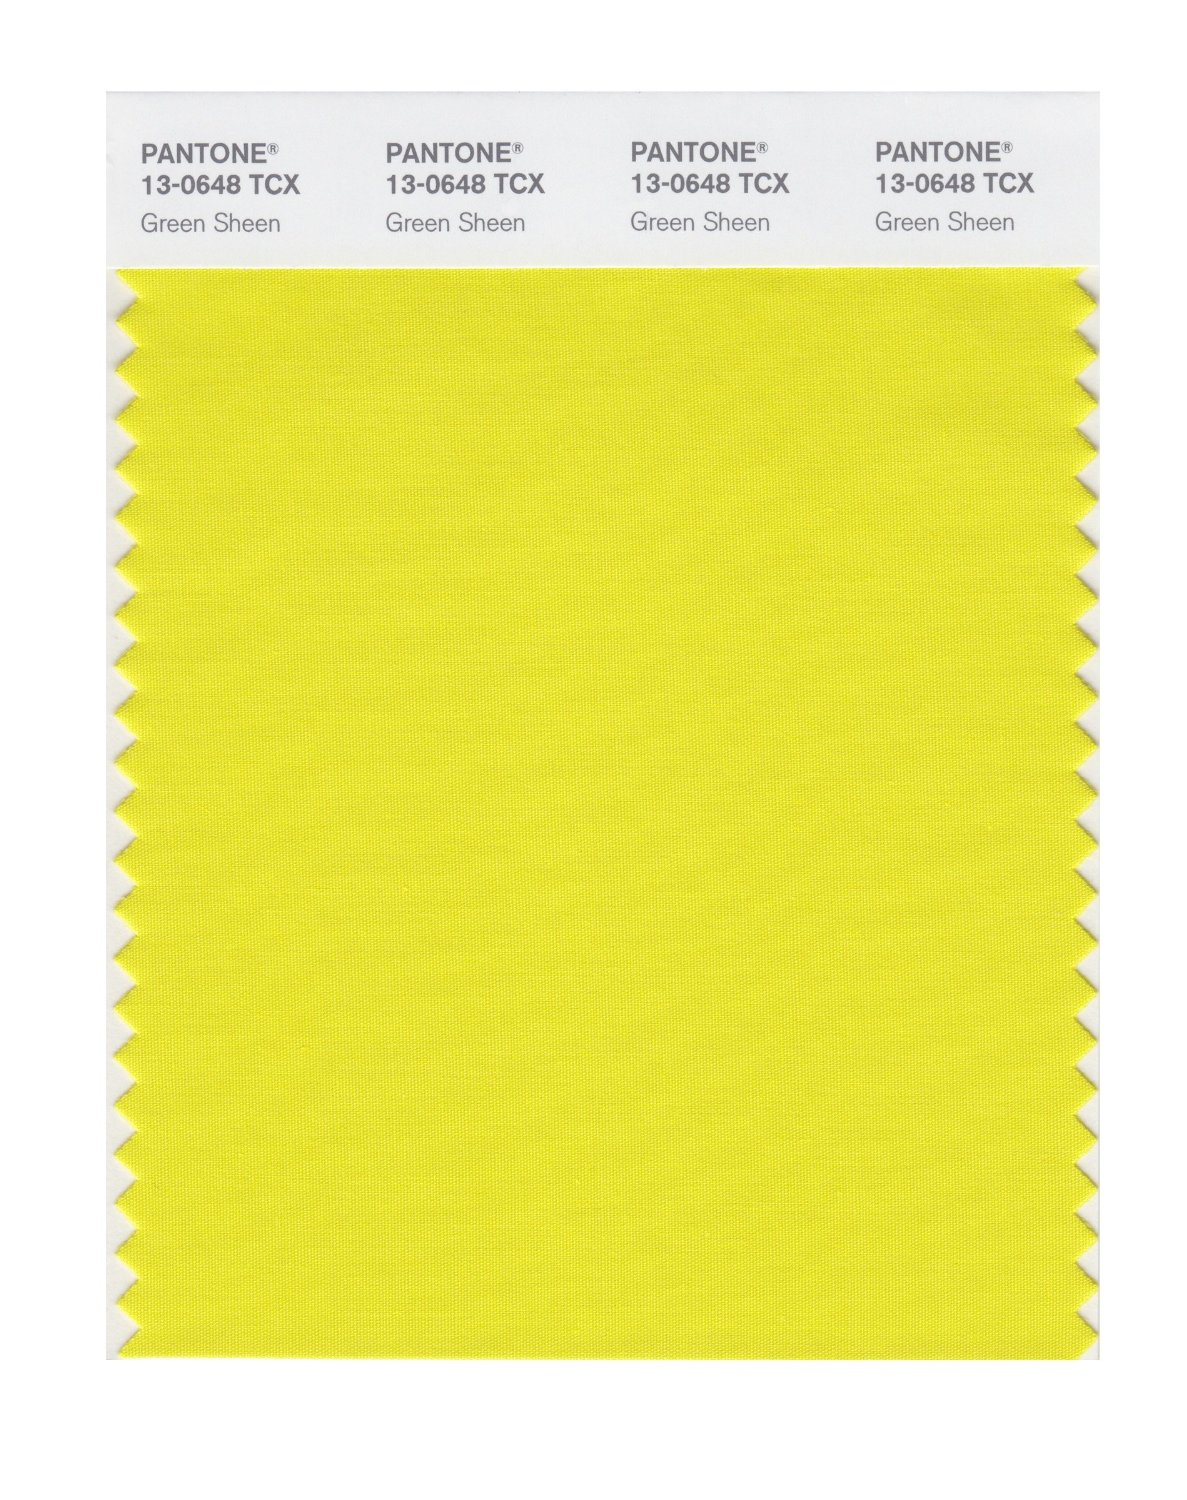 Pantone Smart Swatch 13-0648 Green Sheen